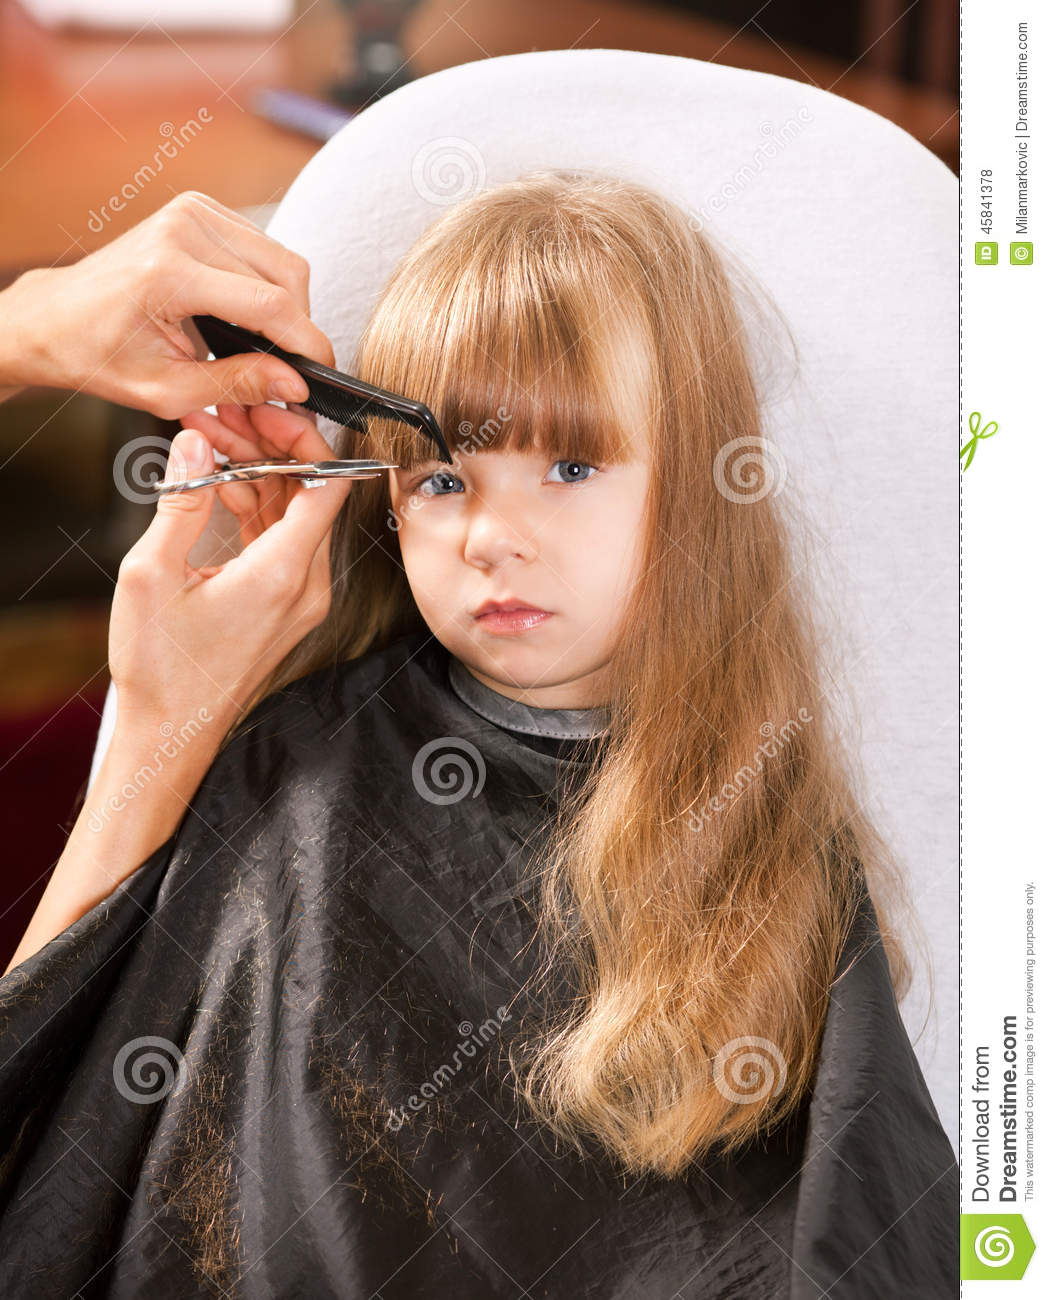 Hair Cutting Stock Photo Image Of Fashion Care Hand 45841378